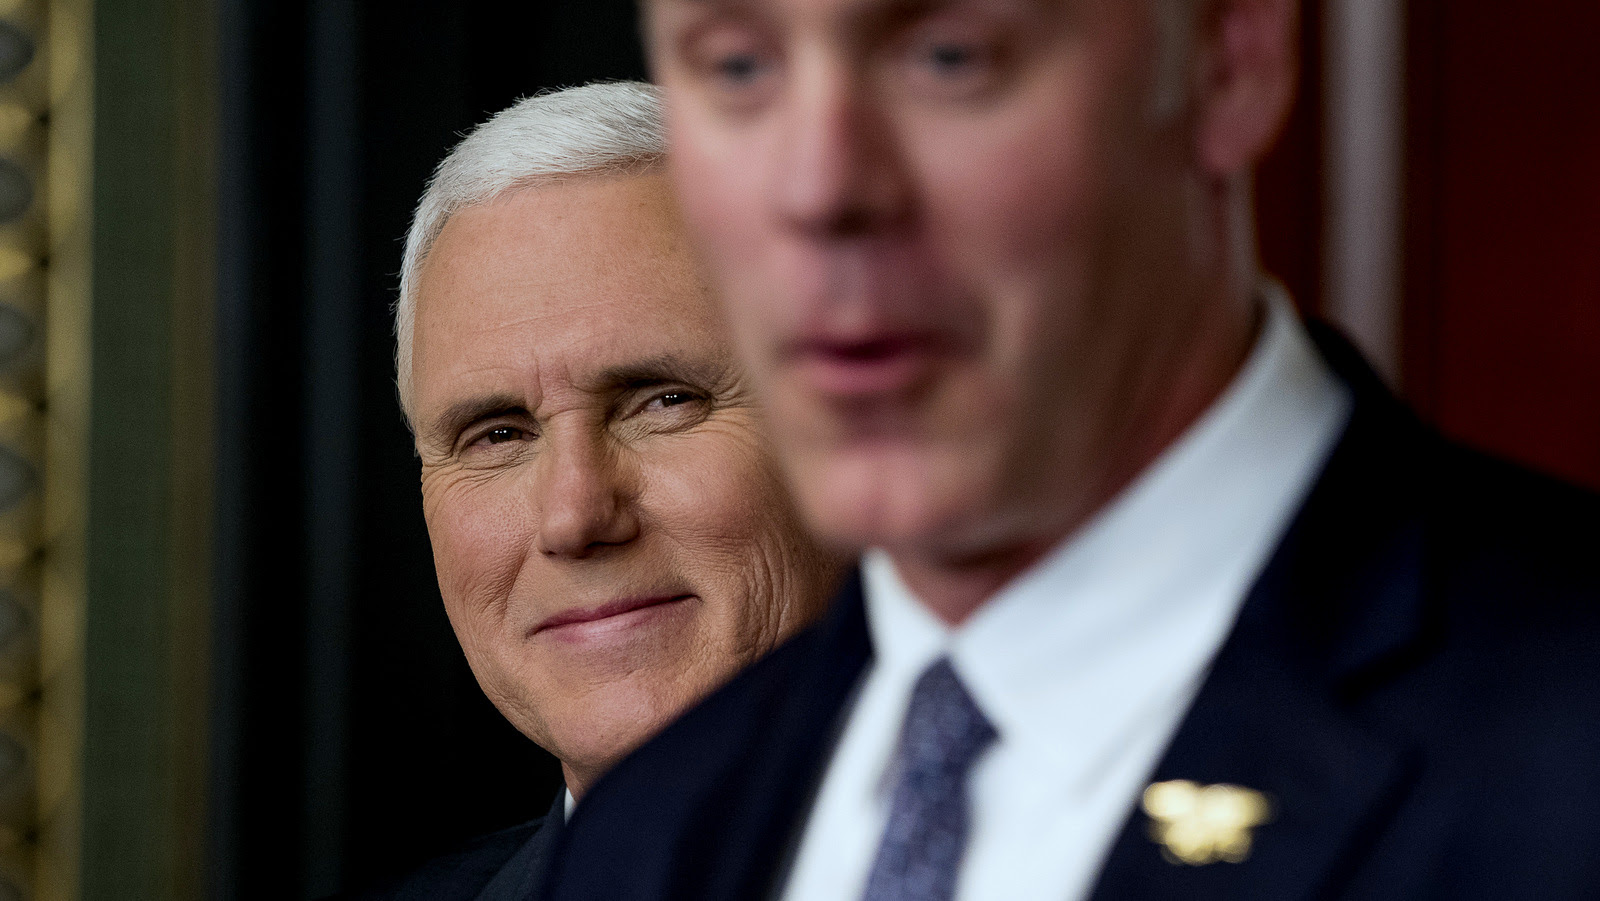 Vice President Mike Pence, left, smiles as newly sworn in Interior Secretary Ryan Zinke speaks, March 1, 2017, in White House. (AP/Andrew Harnik)